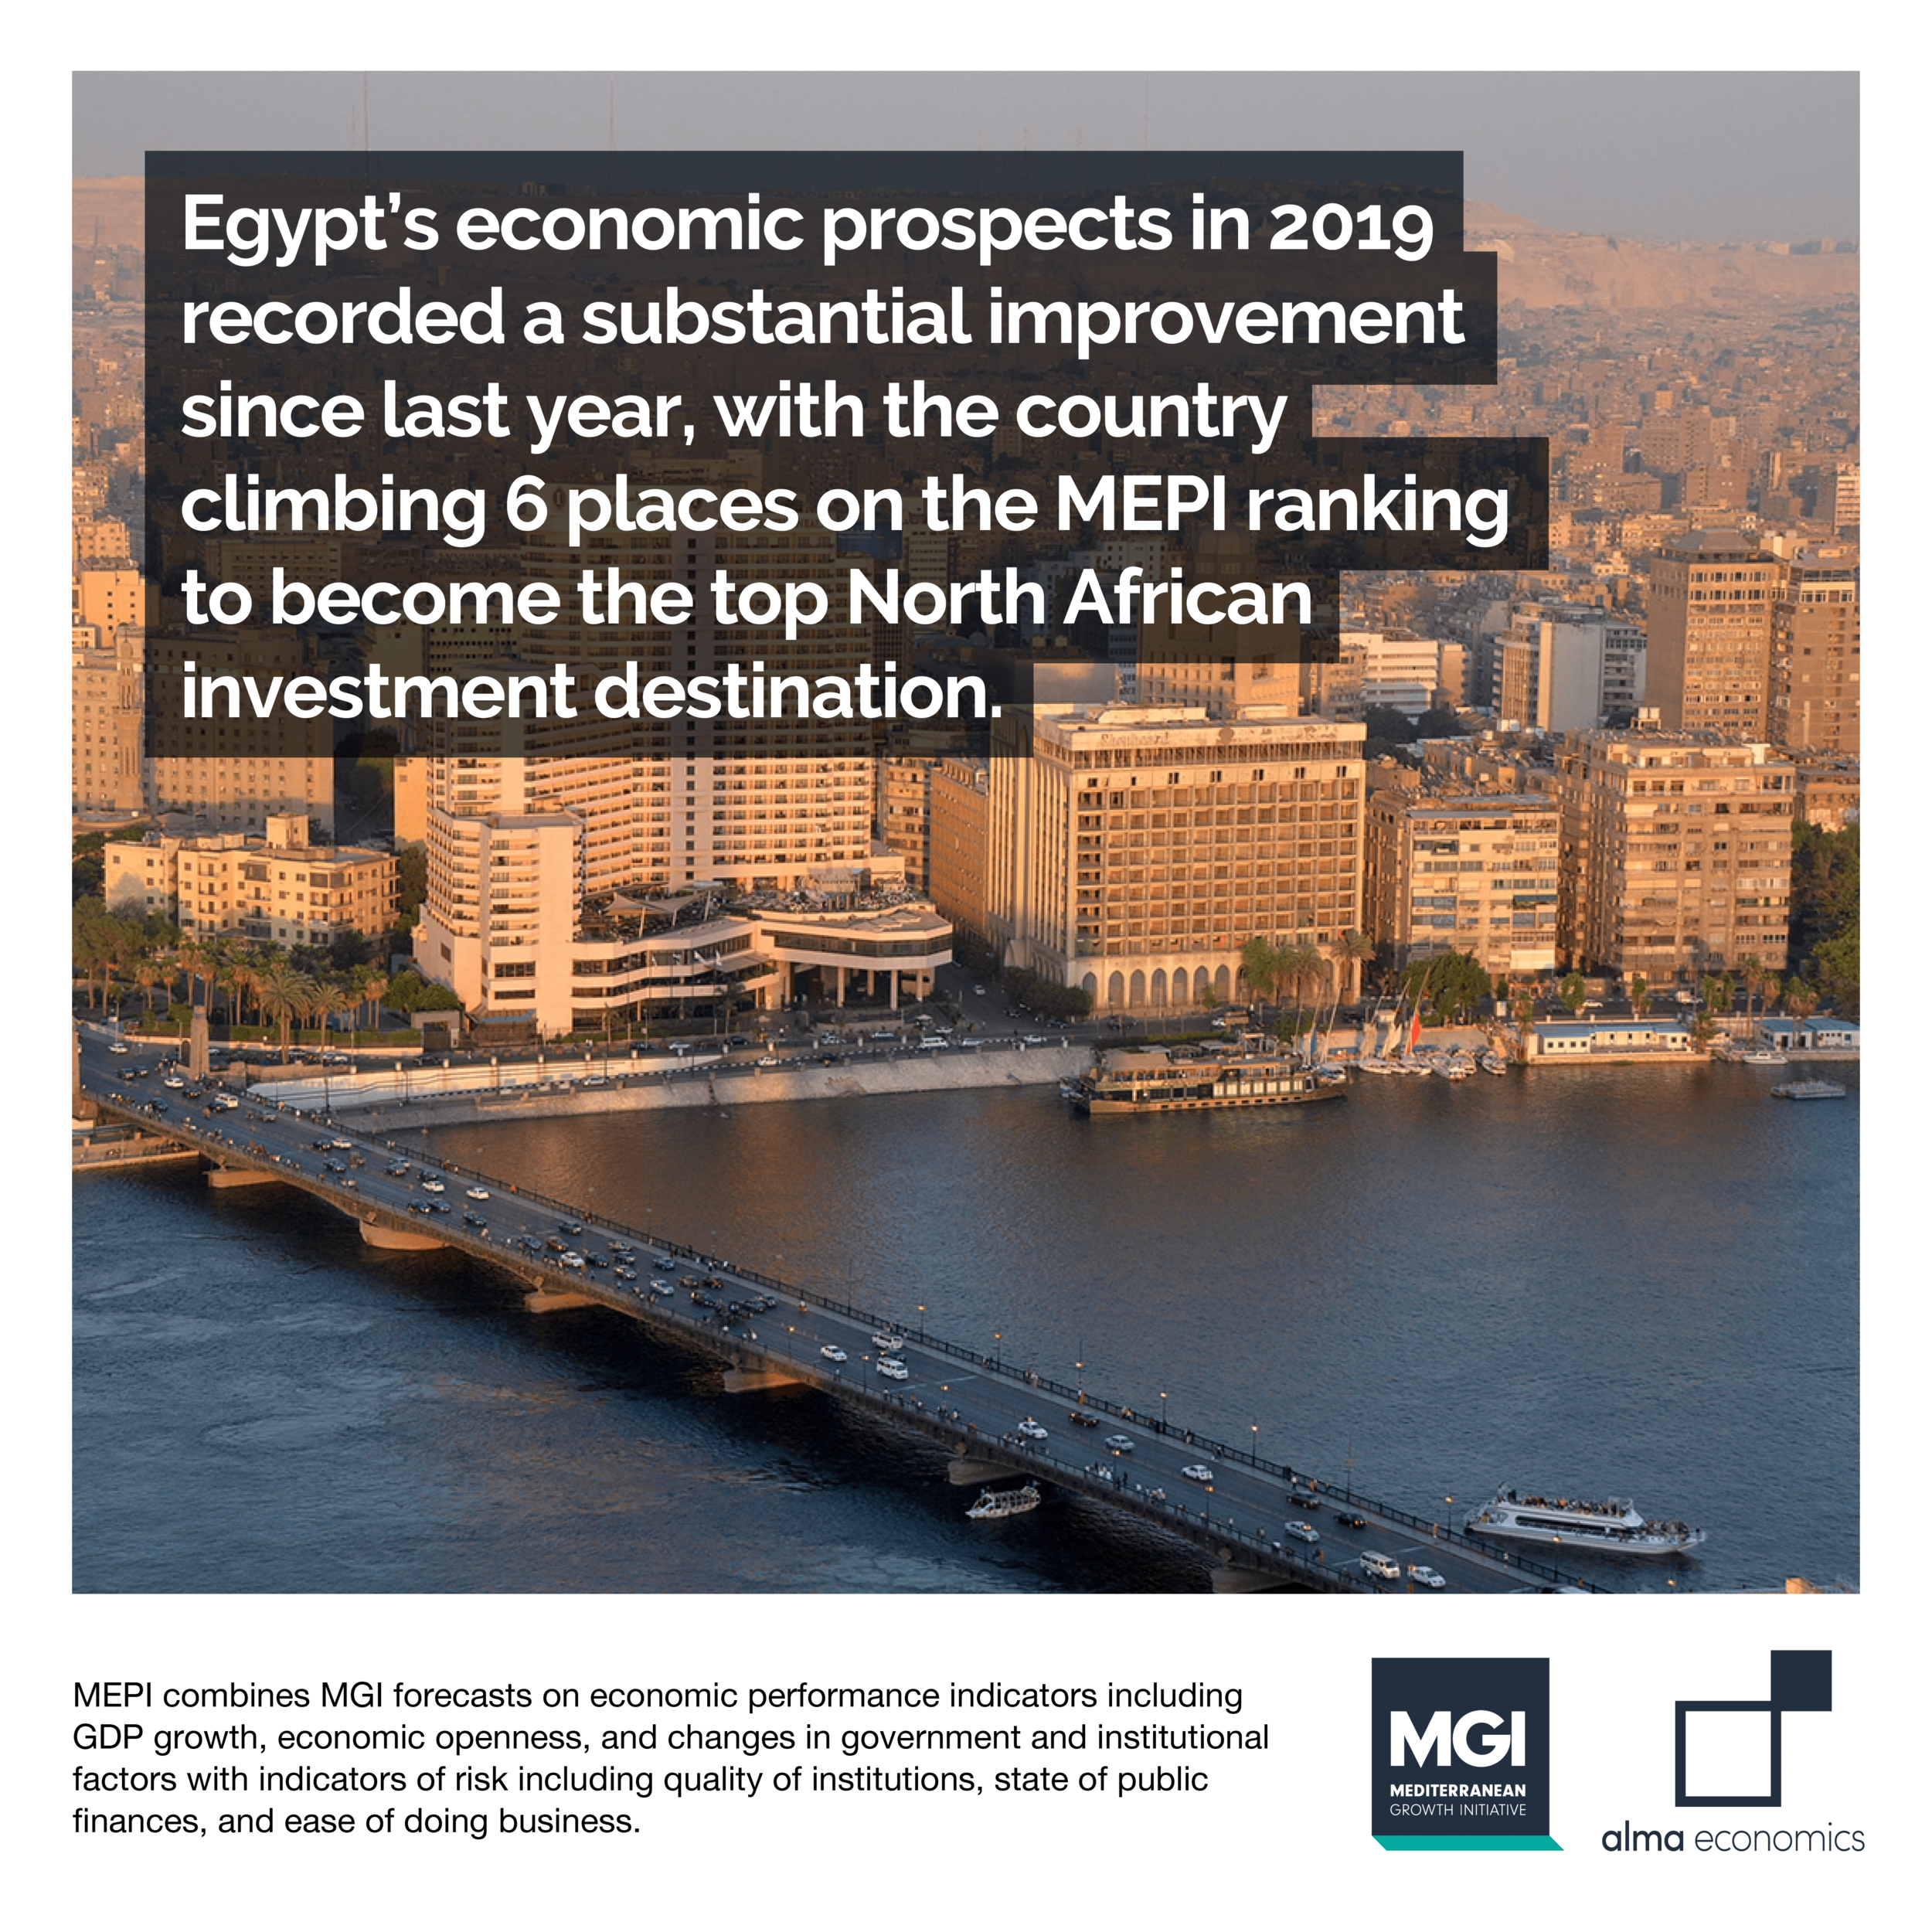 Egypt climbs 6 places to become top North African investment destination -